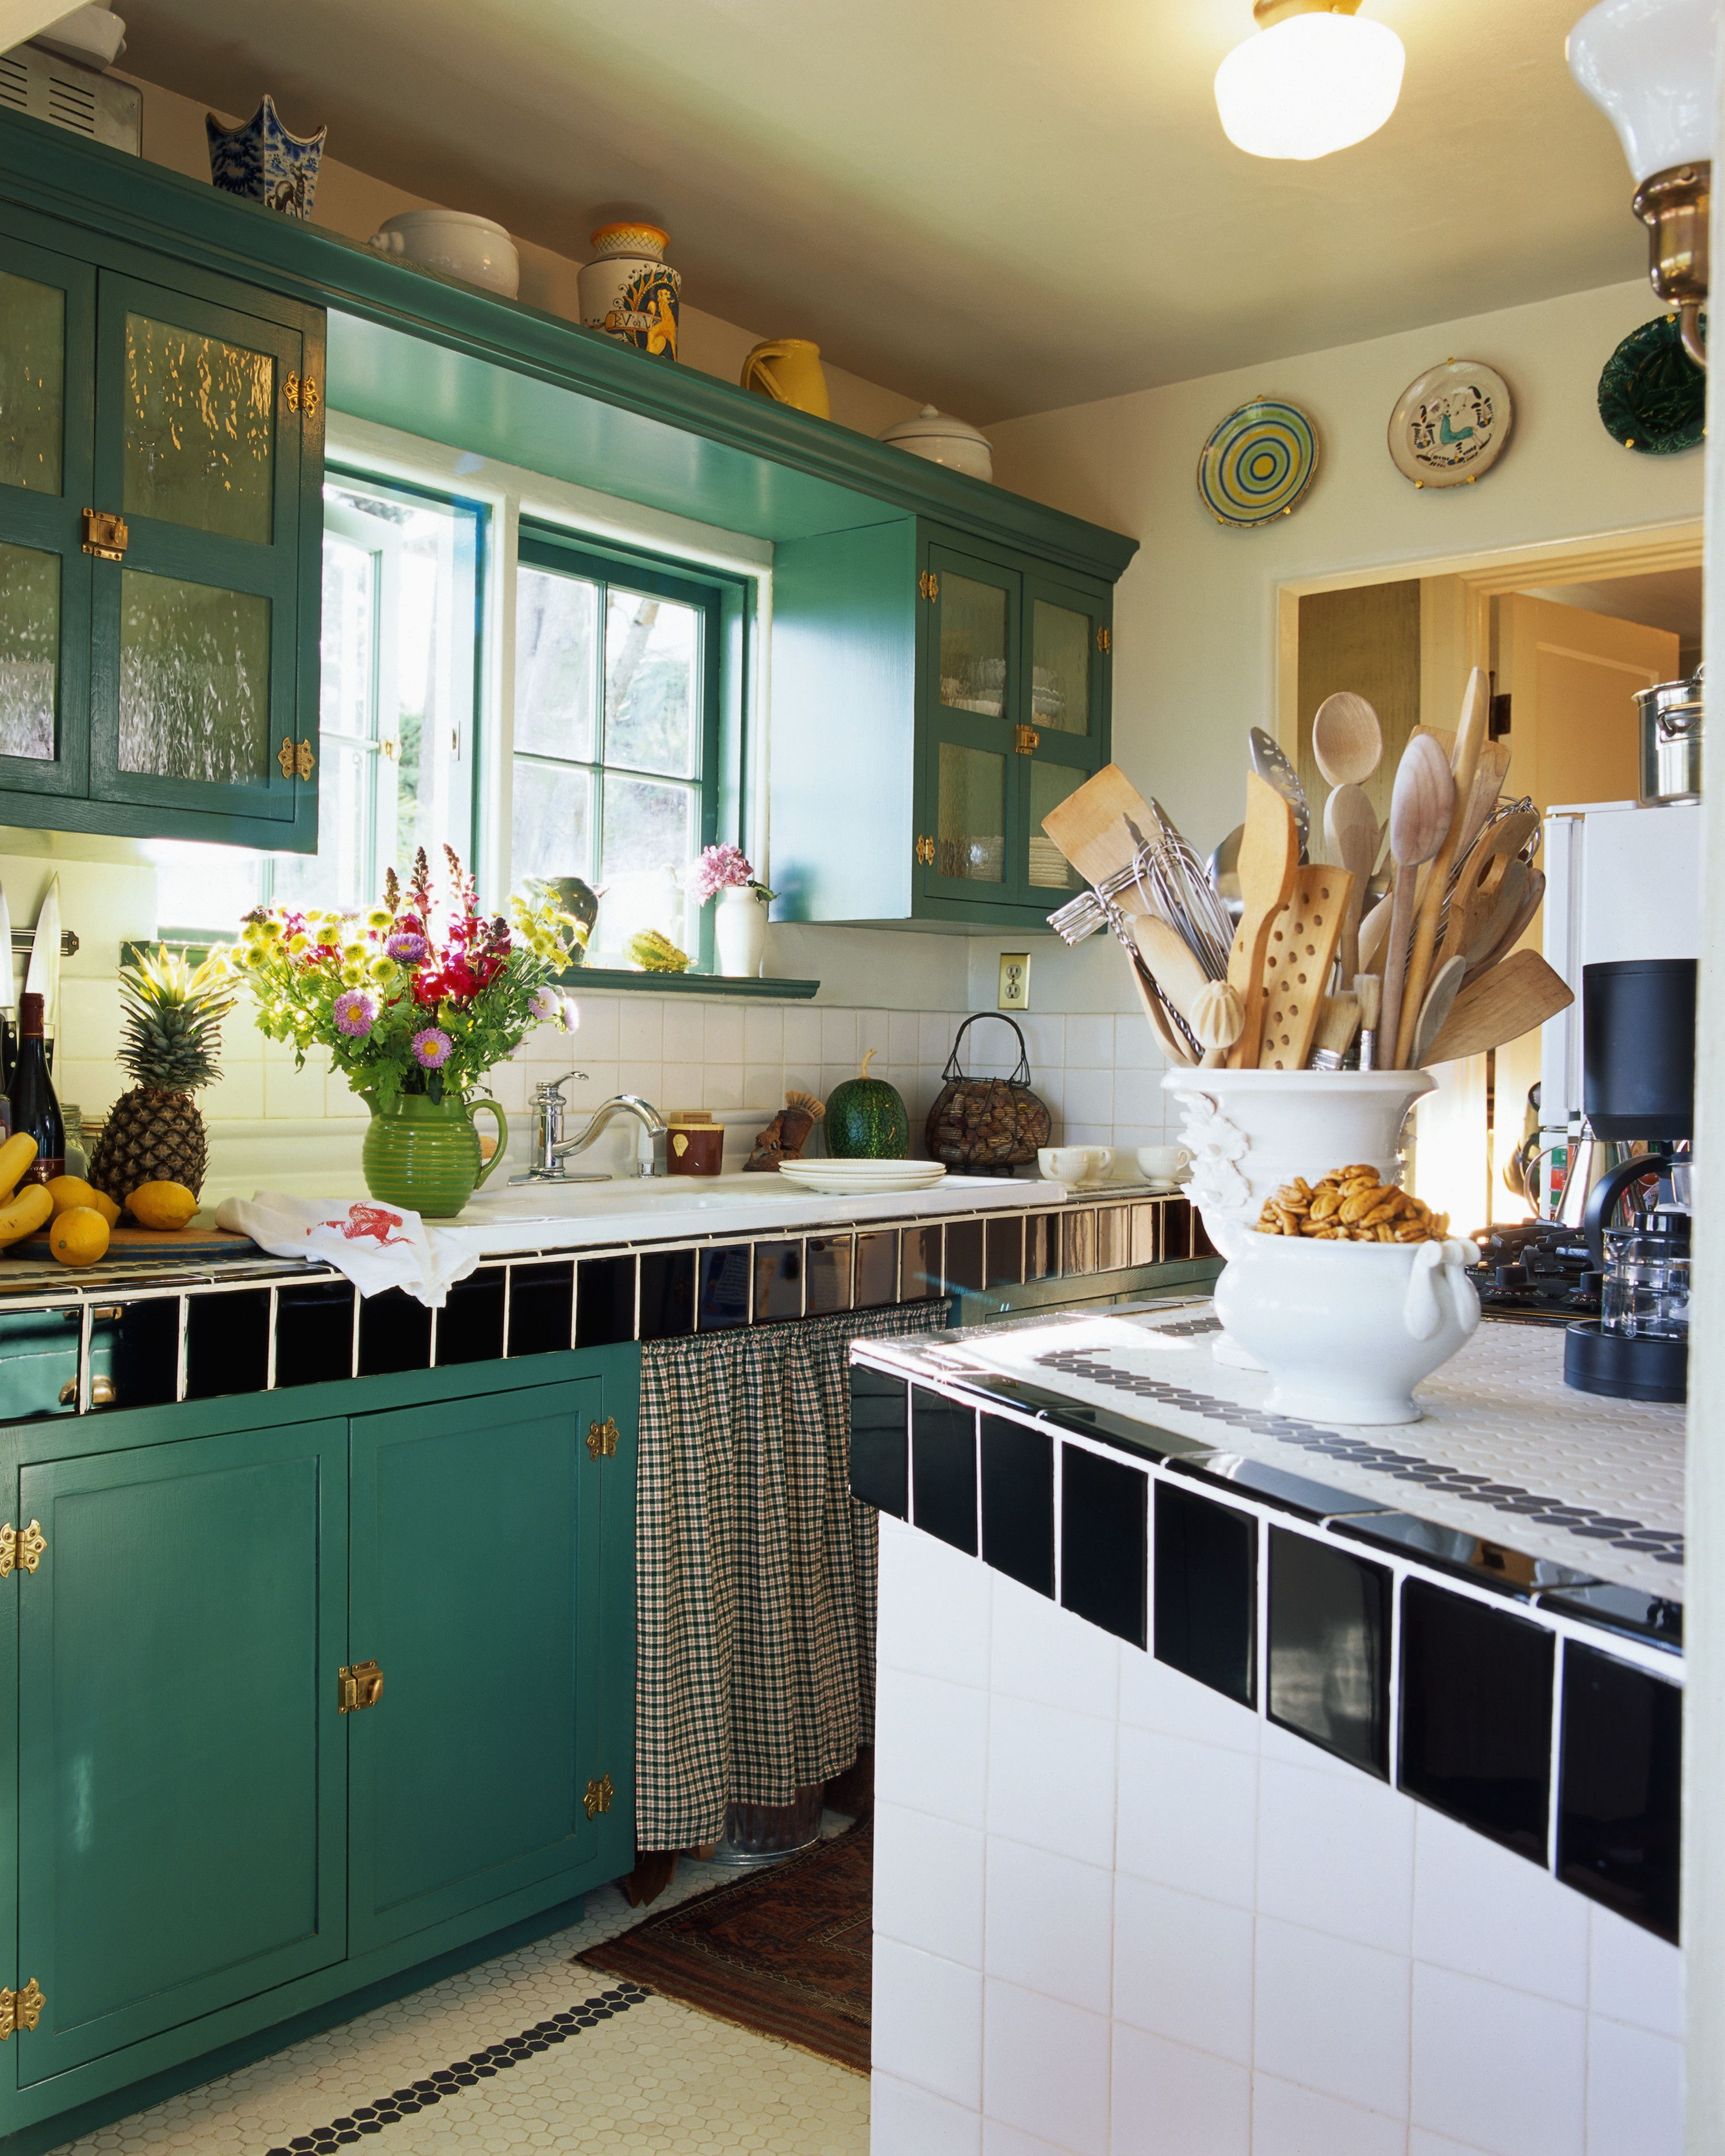 18 Ideas For Decorating Above Kitchen, Decorate Above Your Kitchen Cabinets